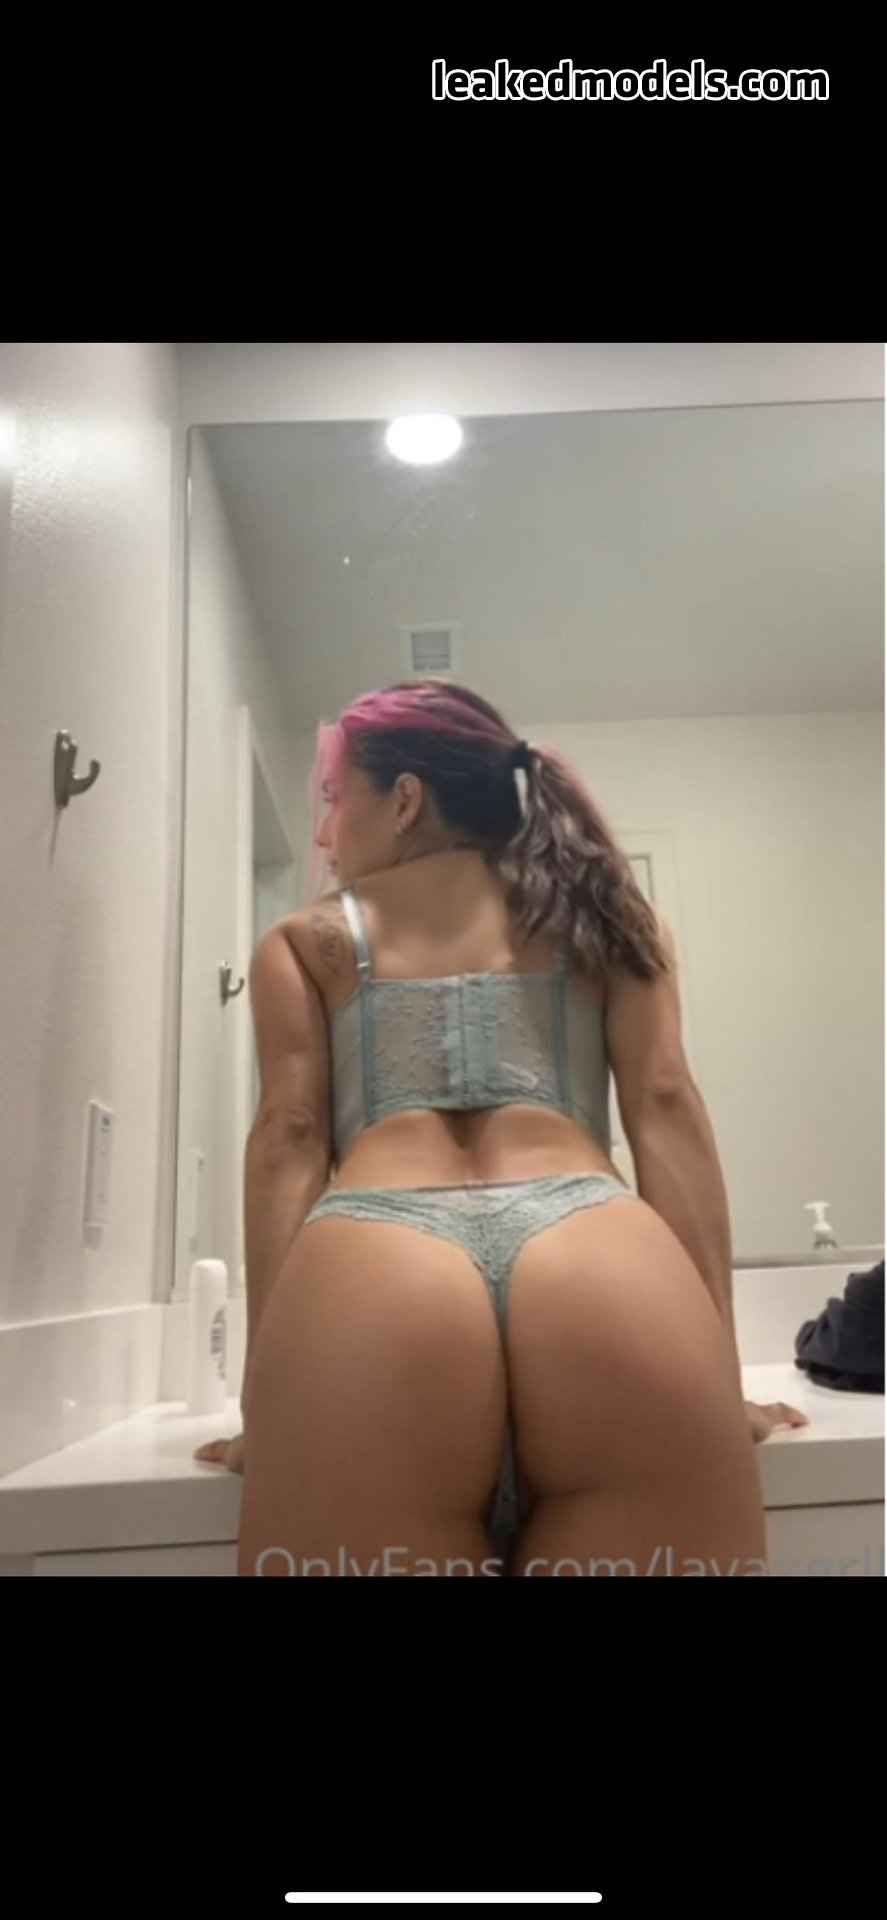 Lavaxgrll Onlyfans Leaks (24 photos + 2 videos)